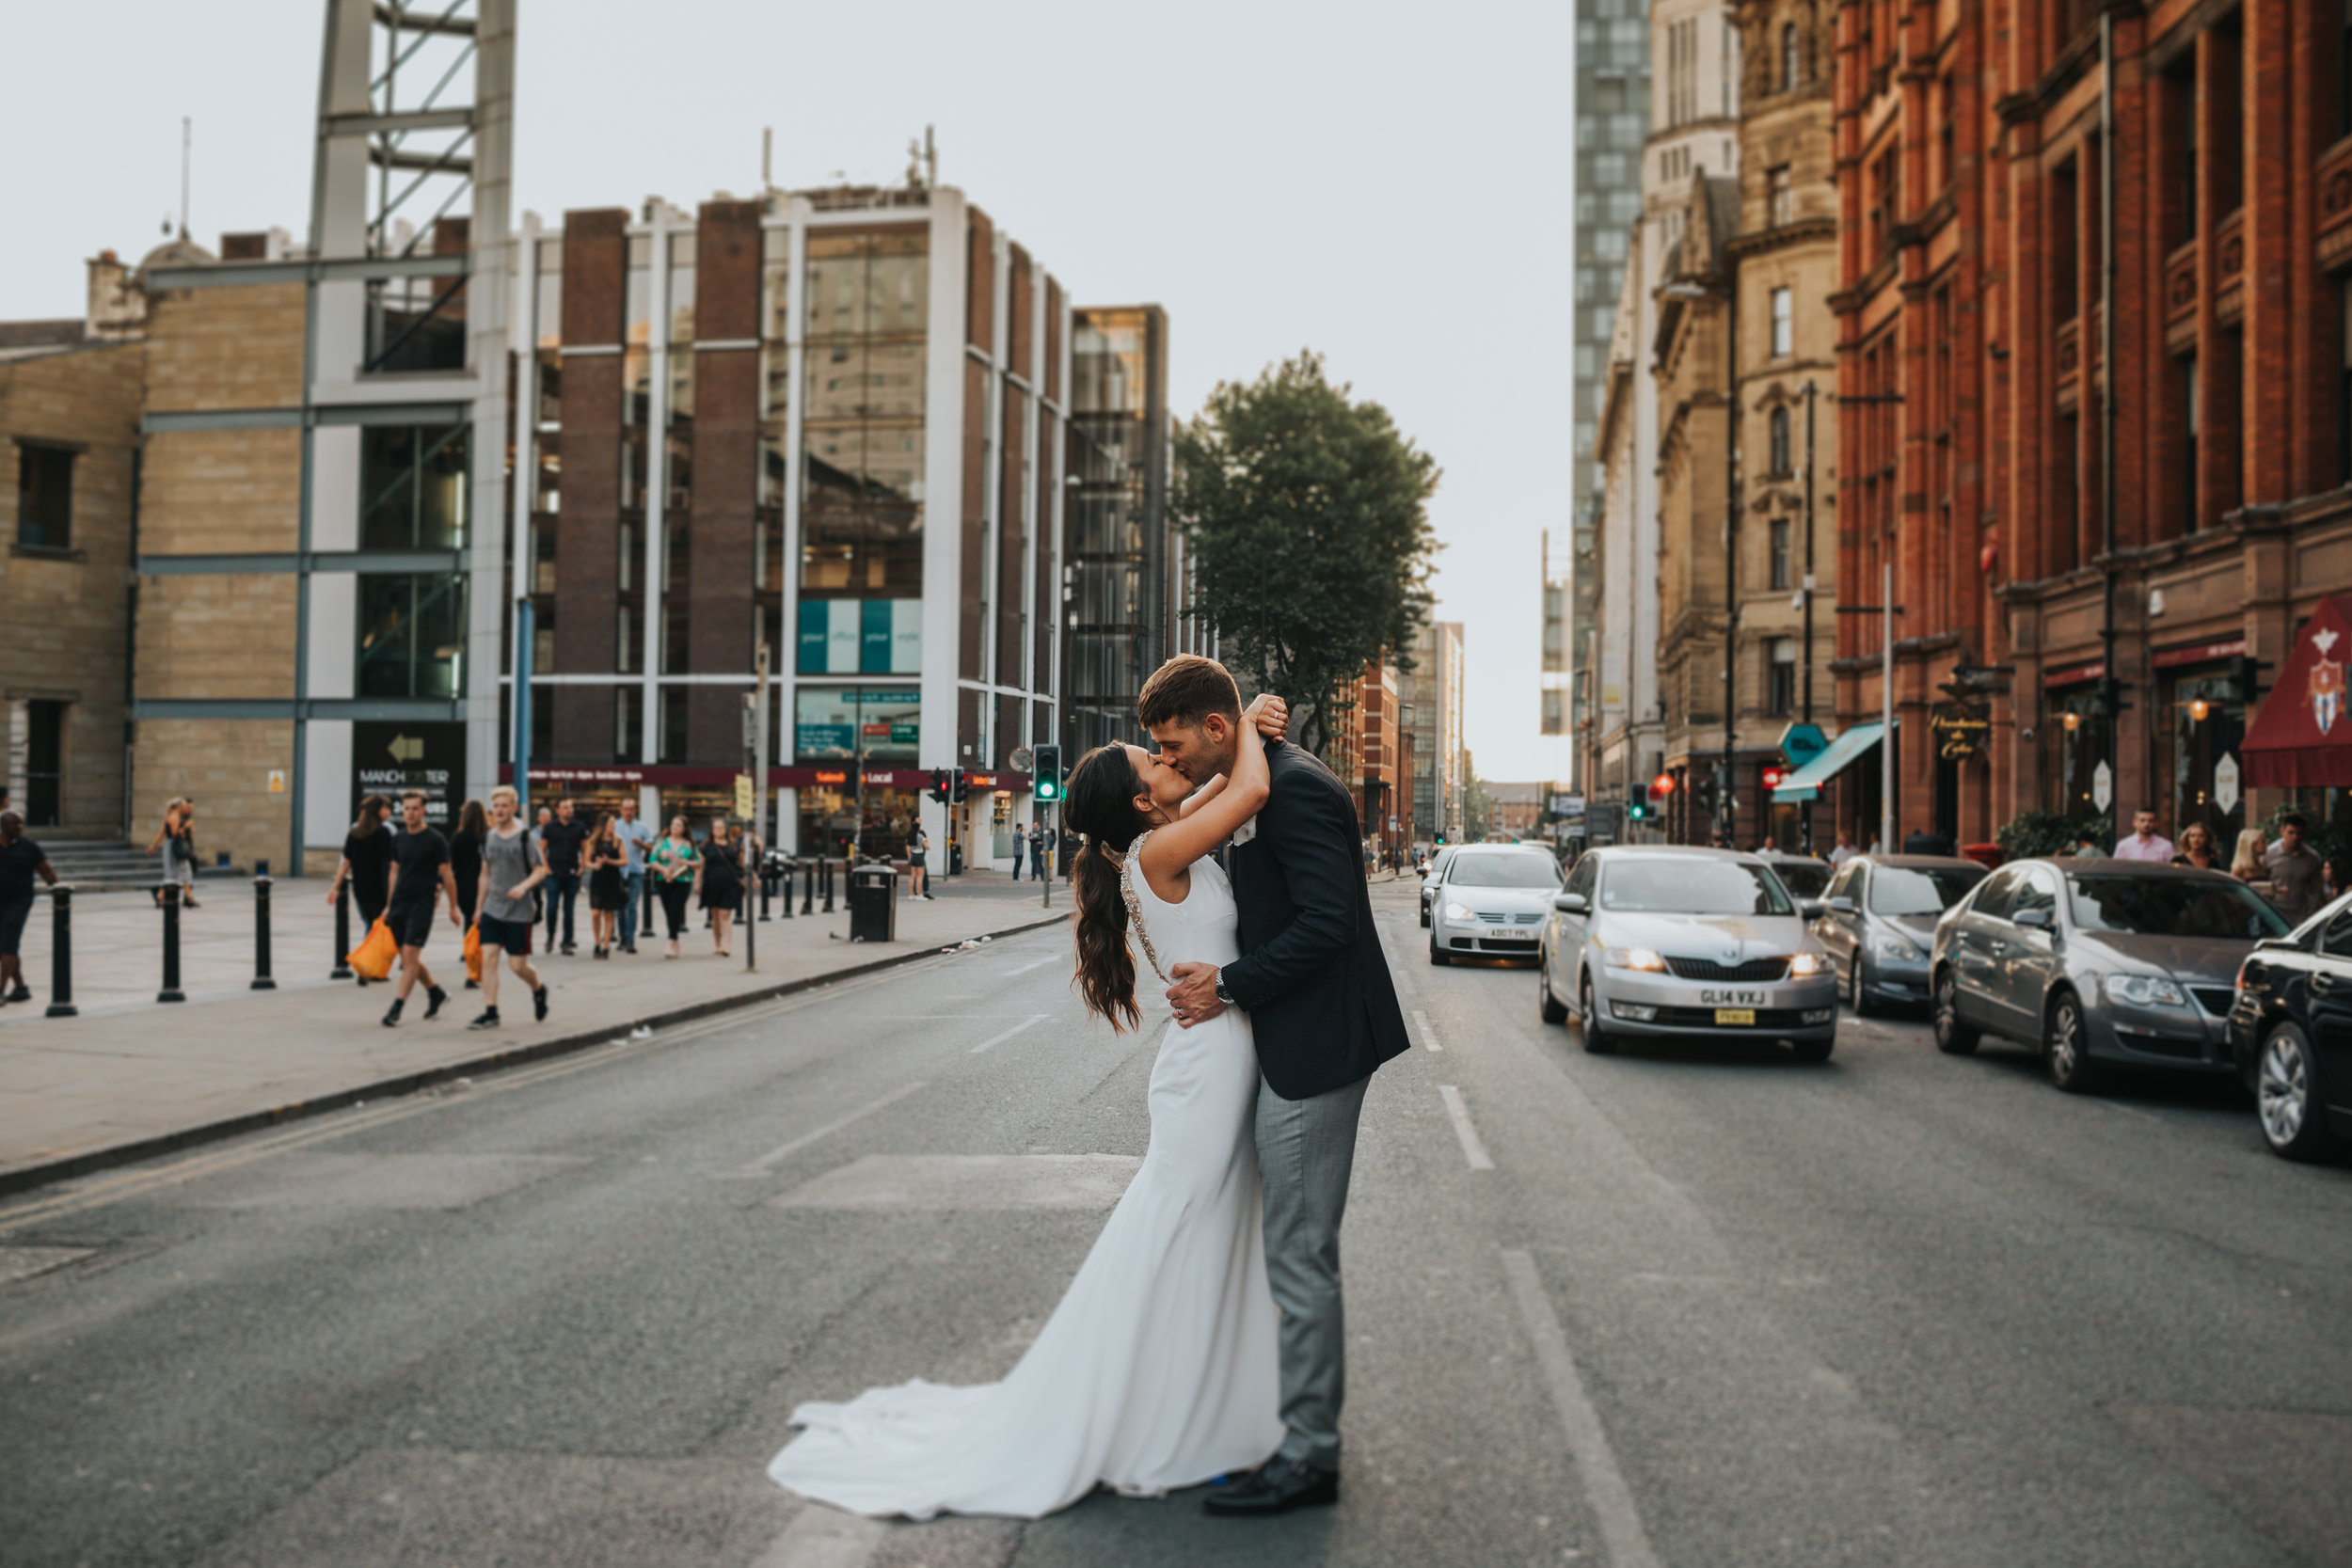 Bride and groom kiss in the middle of the road outside the Albert hall, Manchester.